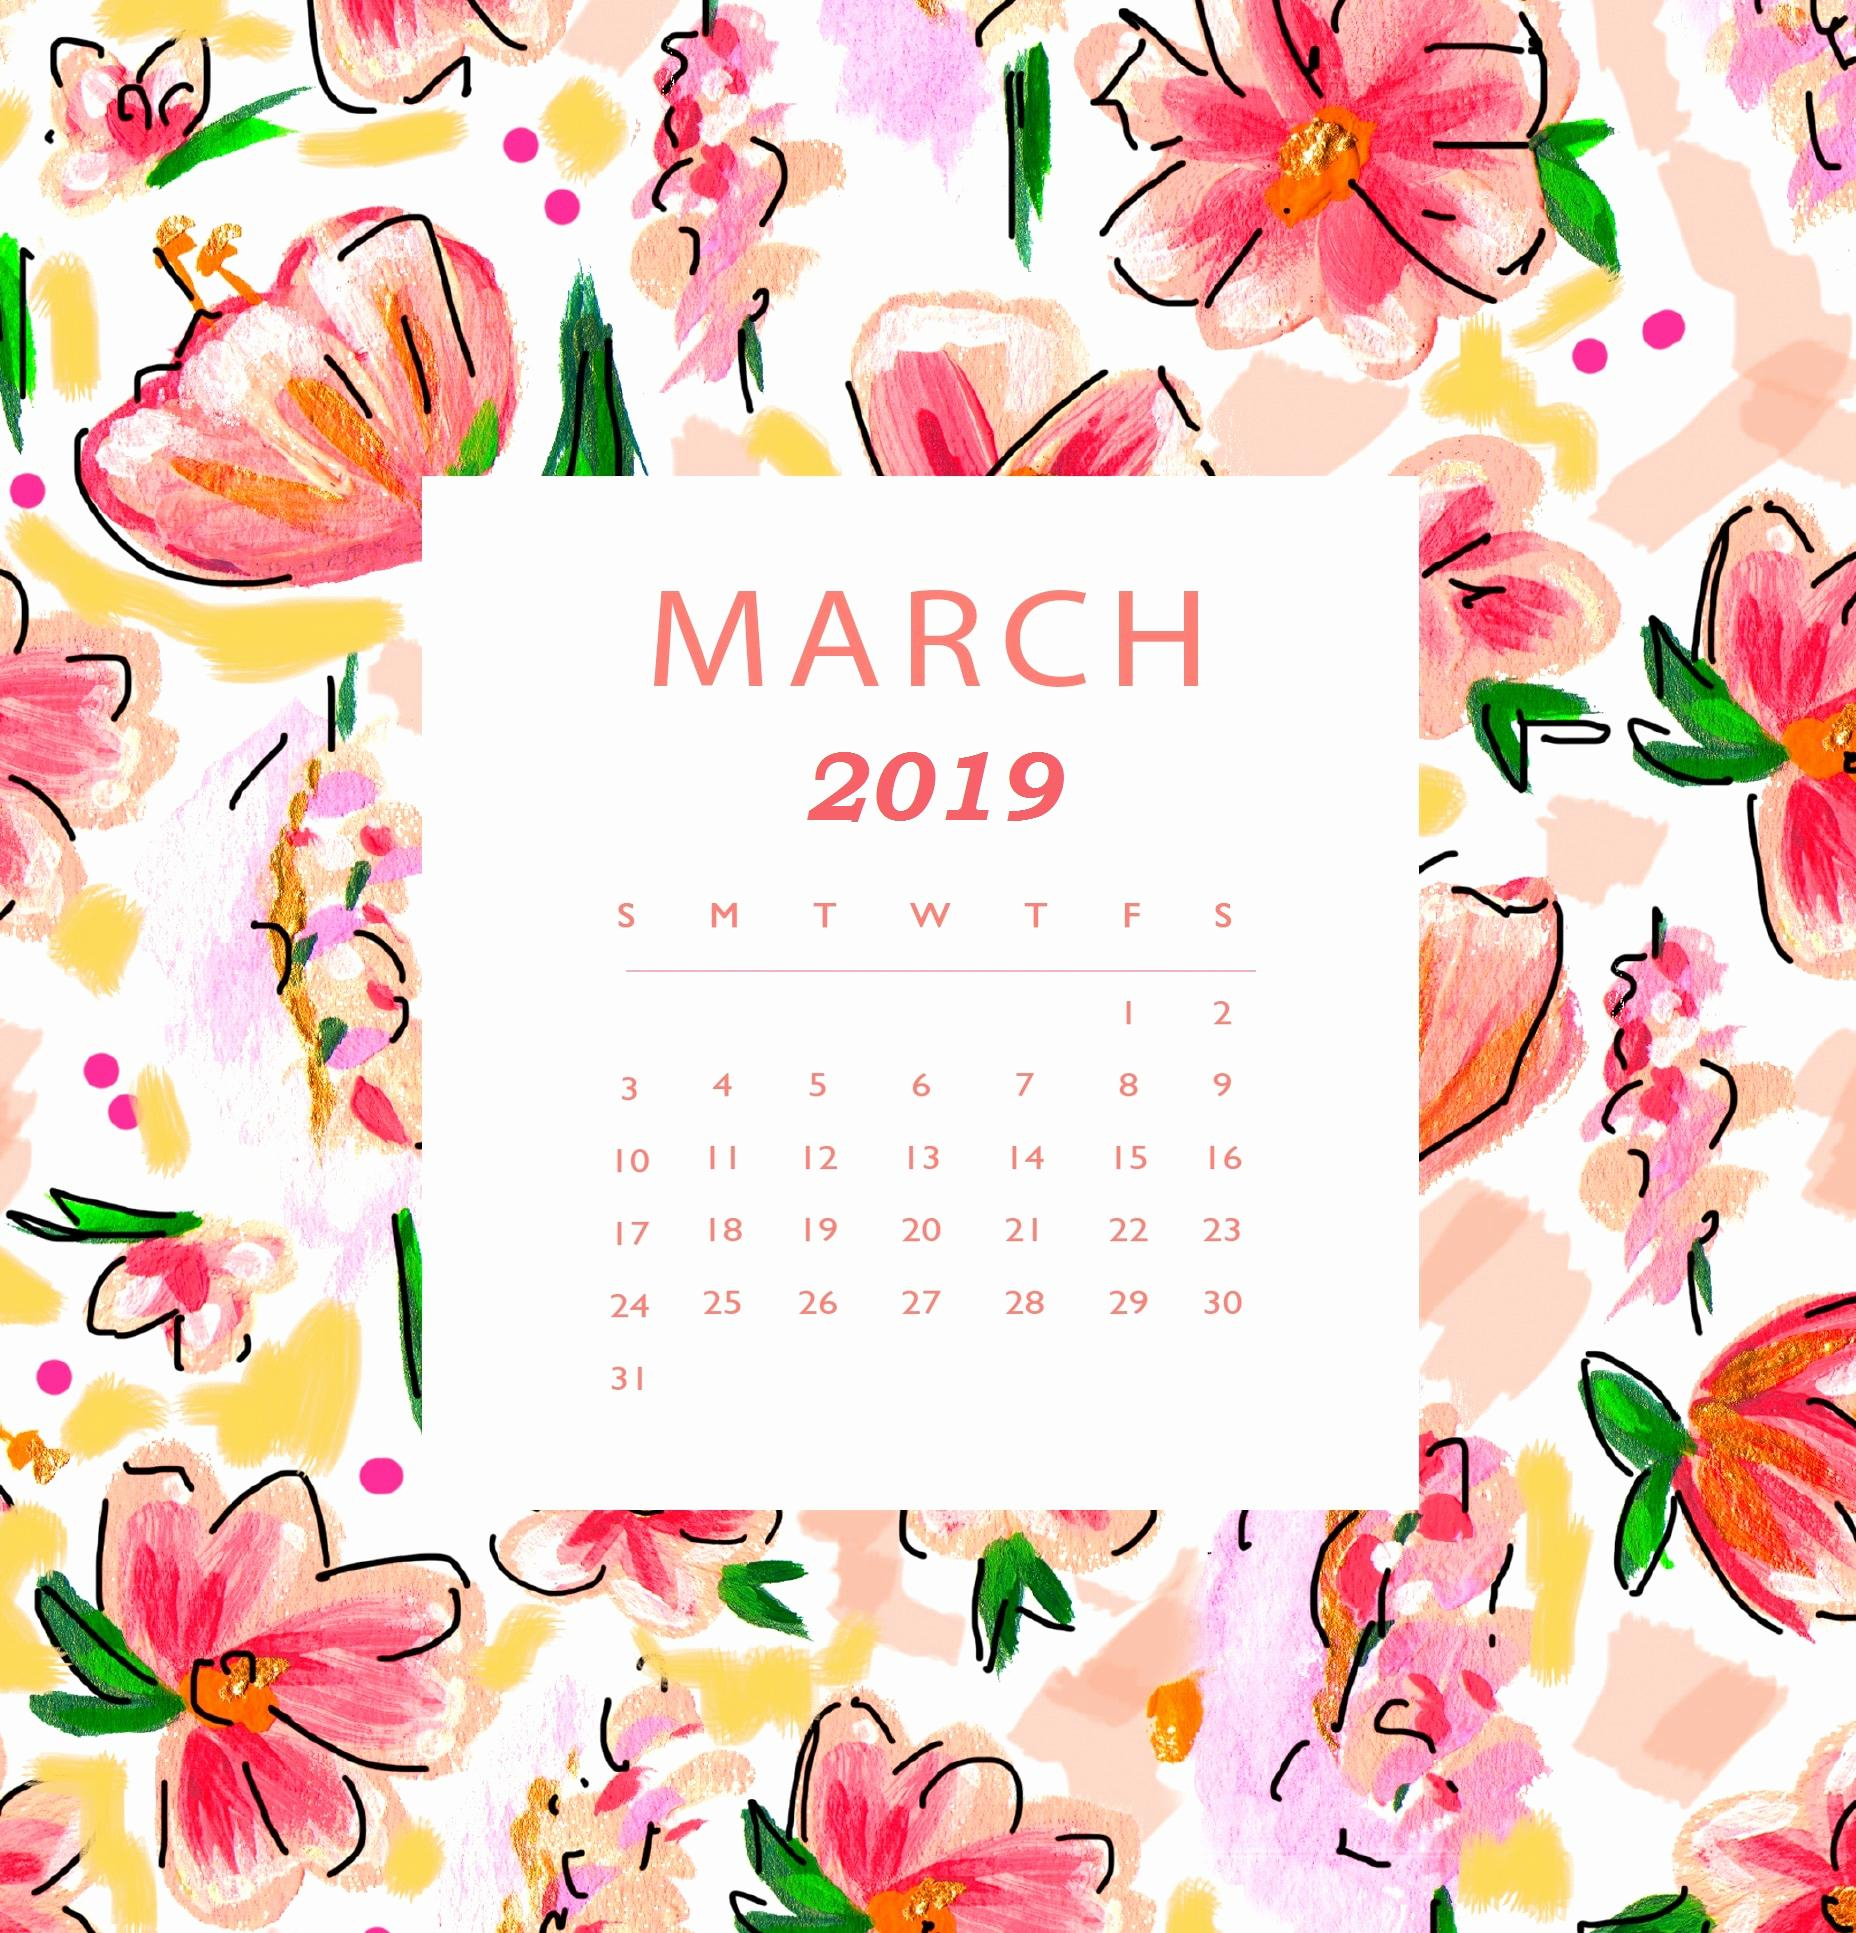 Floral March 2019 Iphone Calendar Wallpaper - Free August 2019